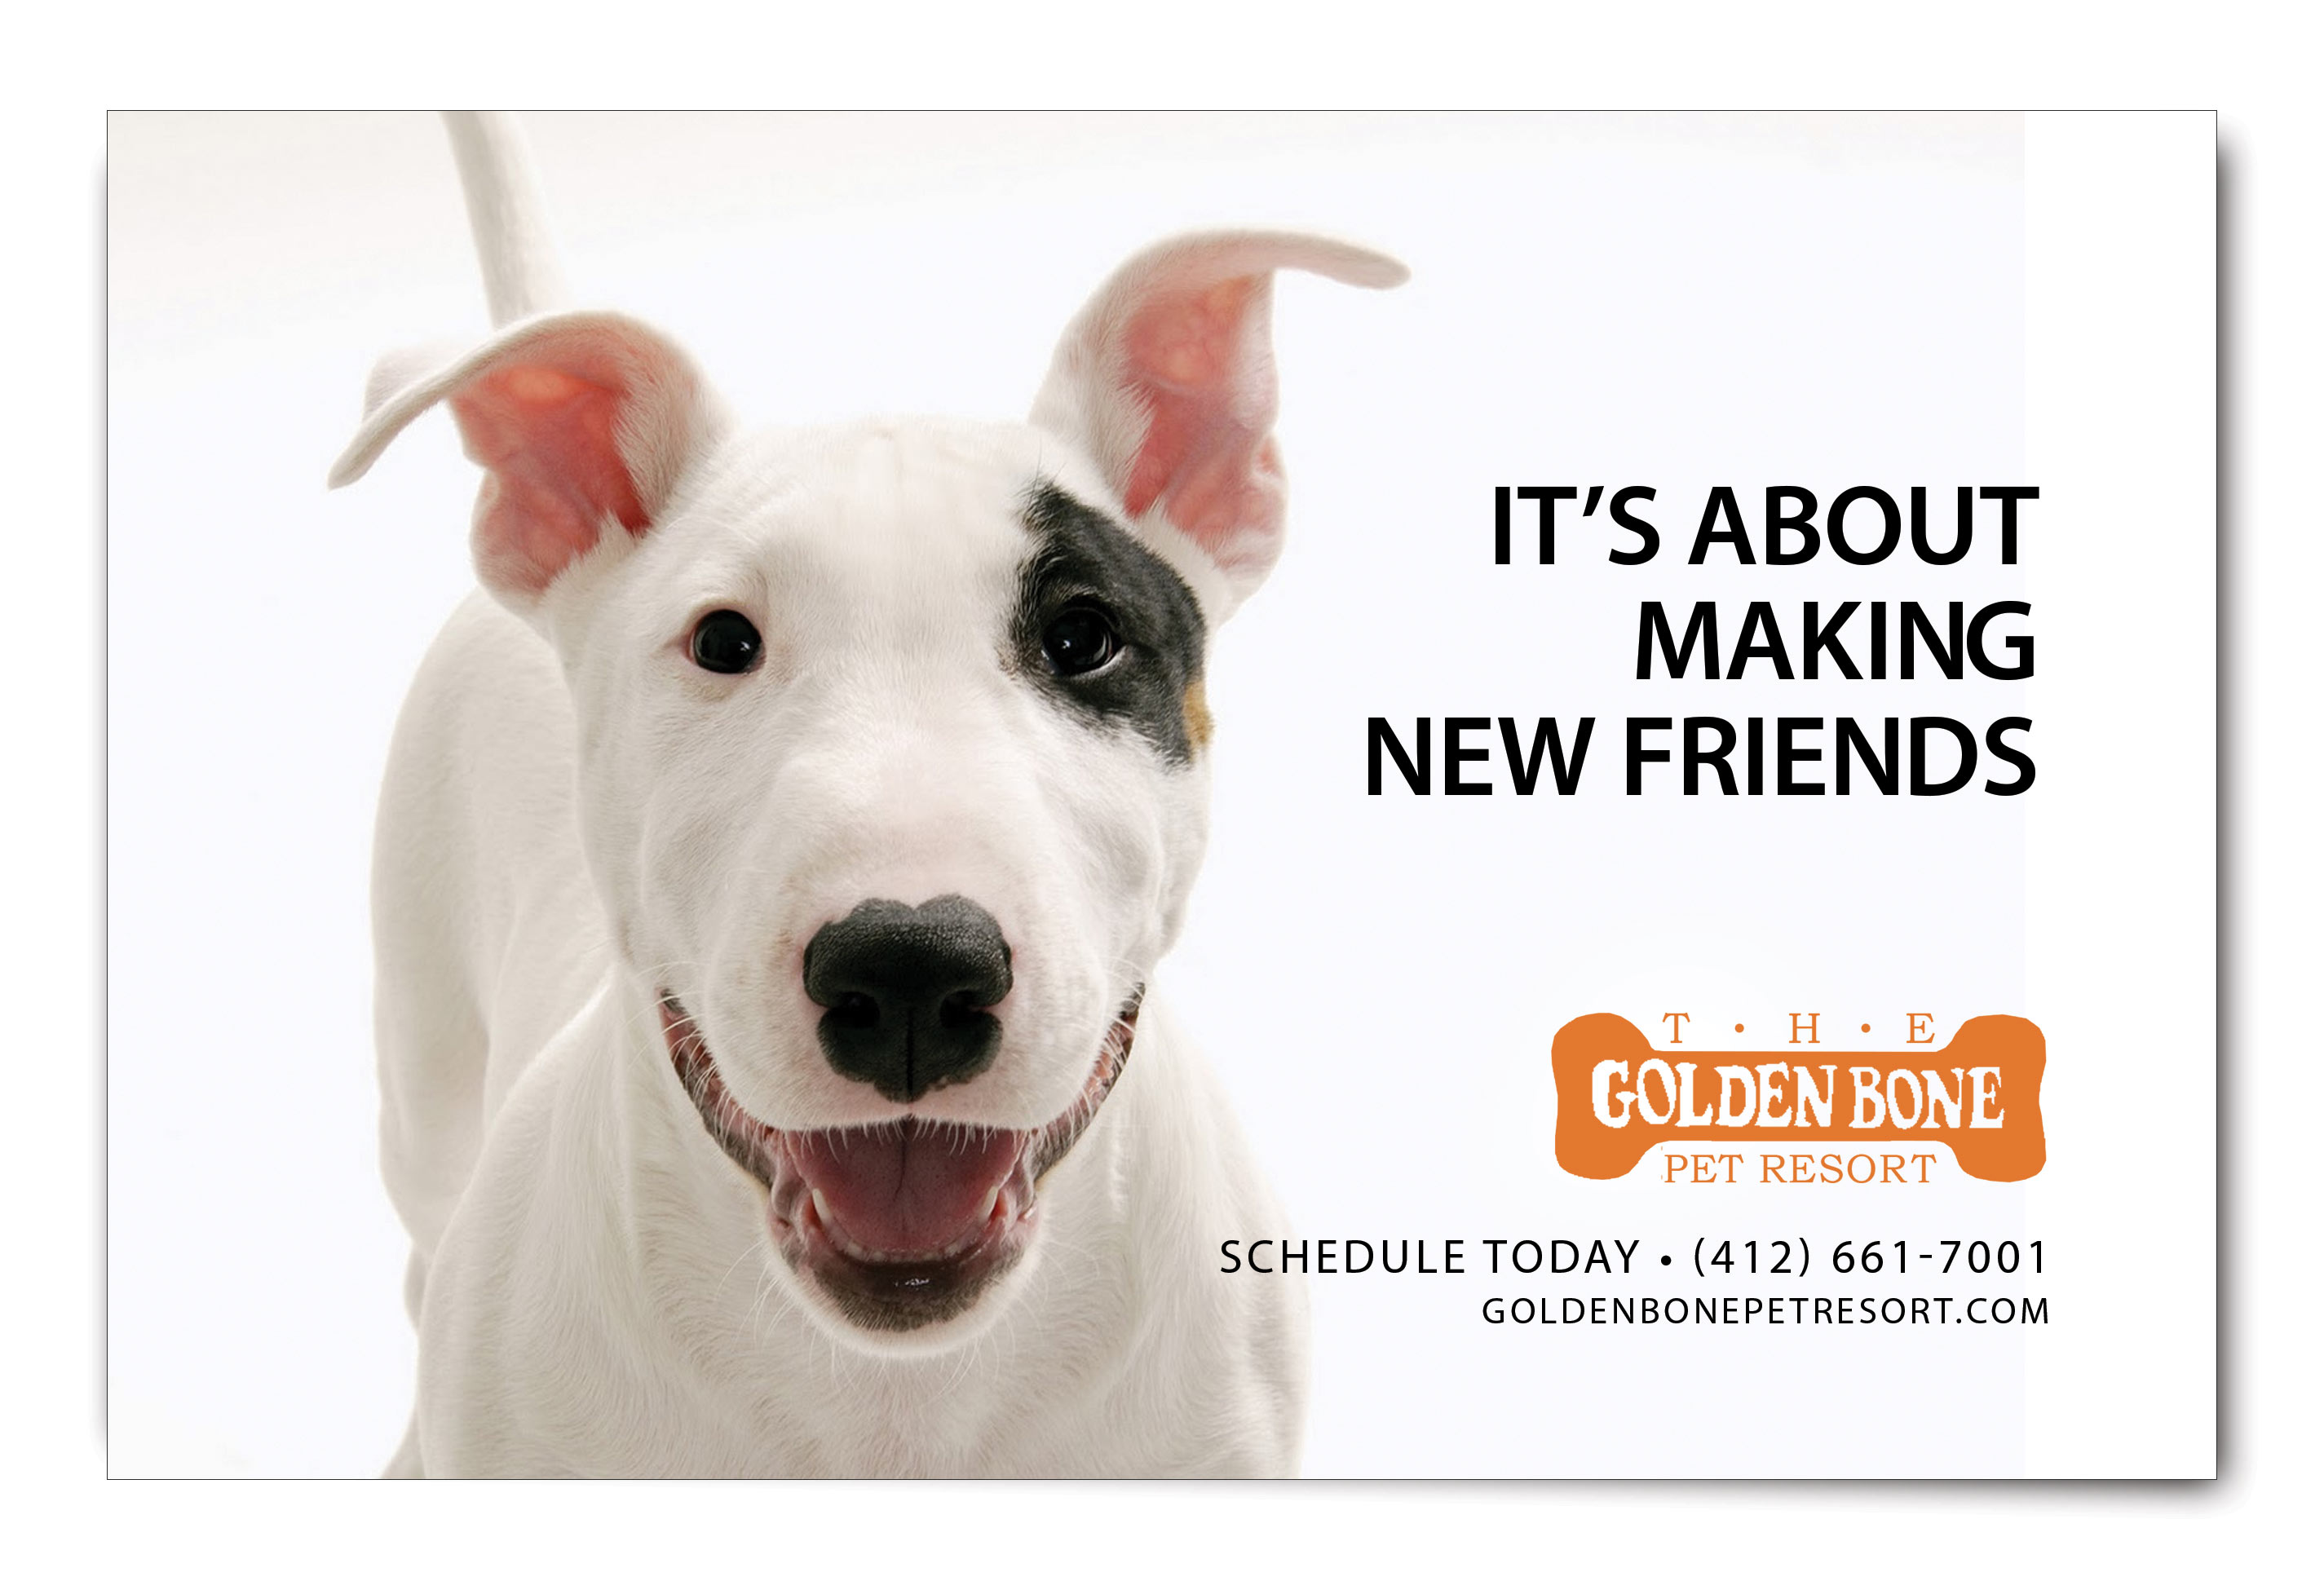 The Golden Bone Pet Resort Ad